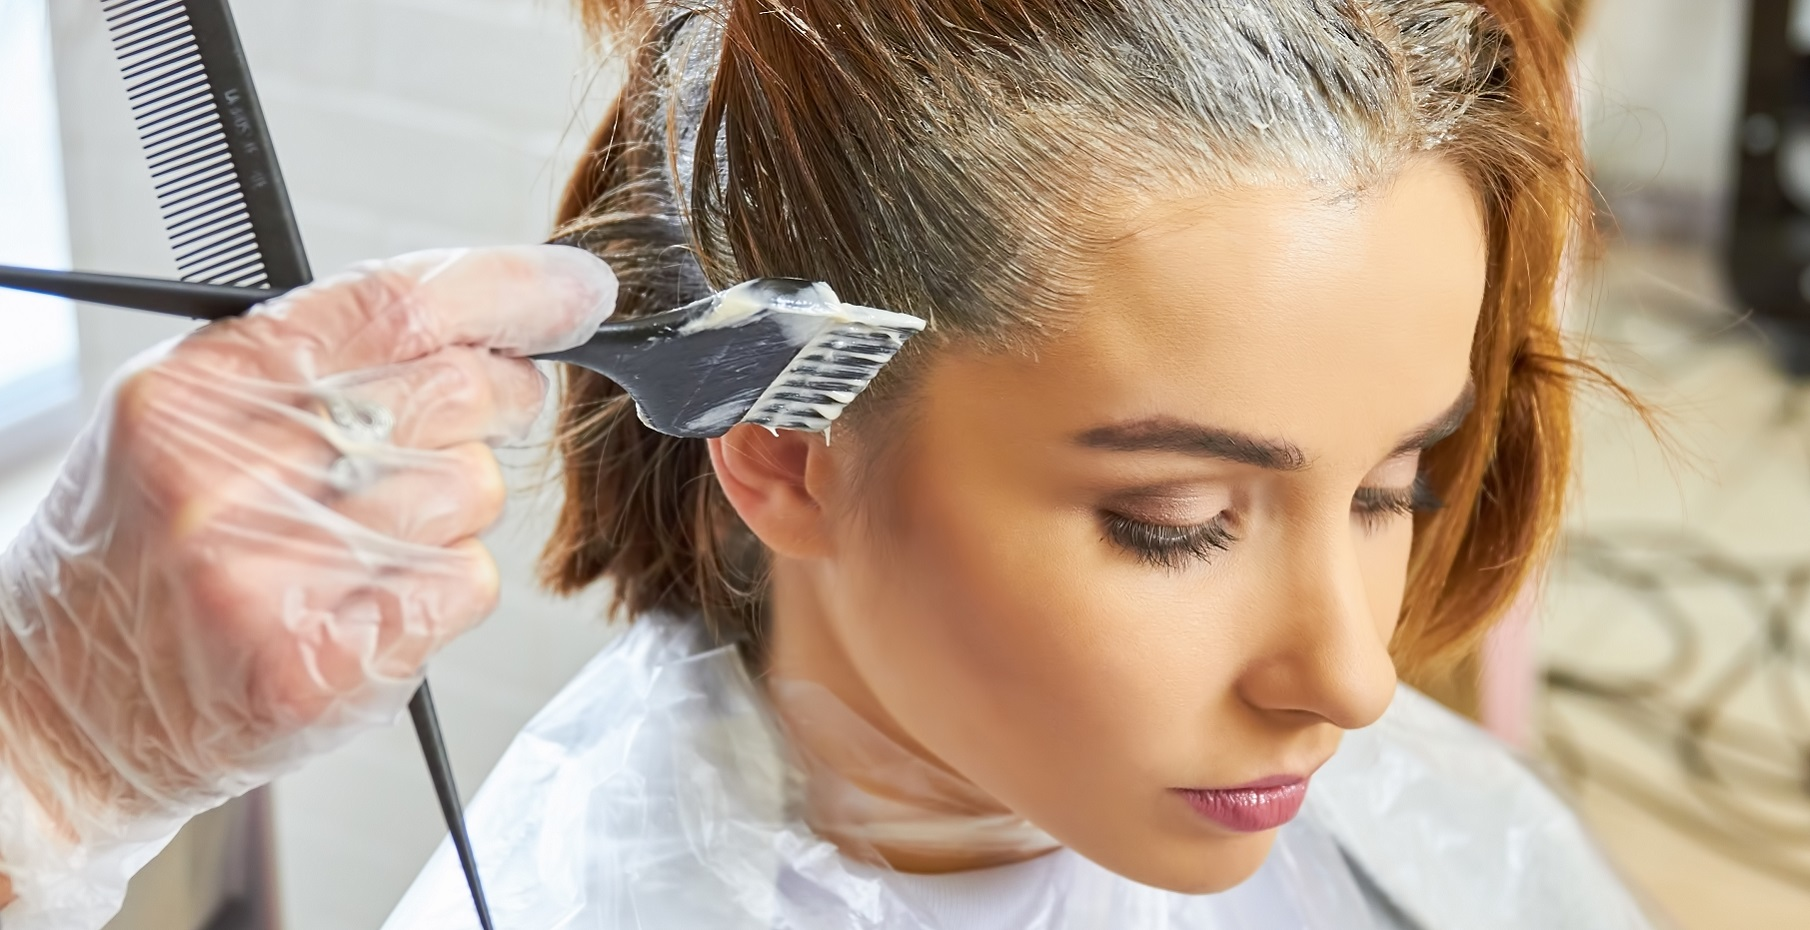 The study found that women who use permanent dye or straighteners are at a higher risk of developing breast cancer than women who do not use these products.